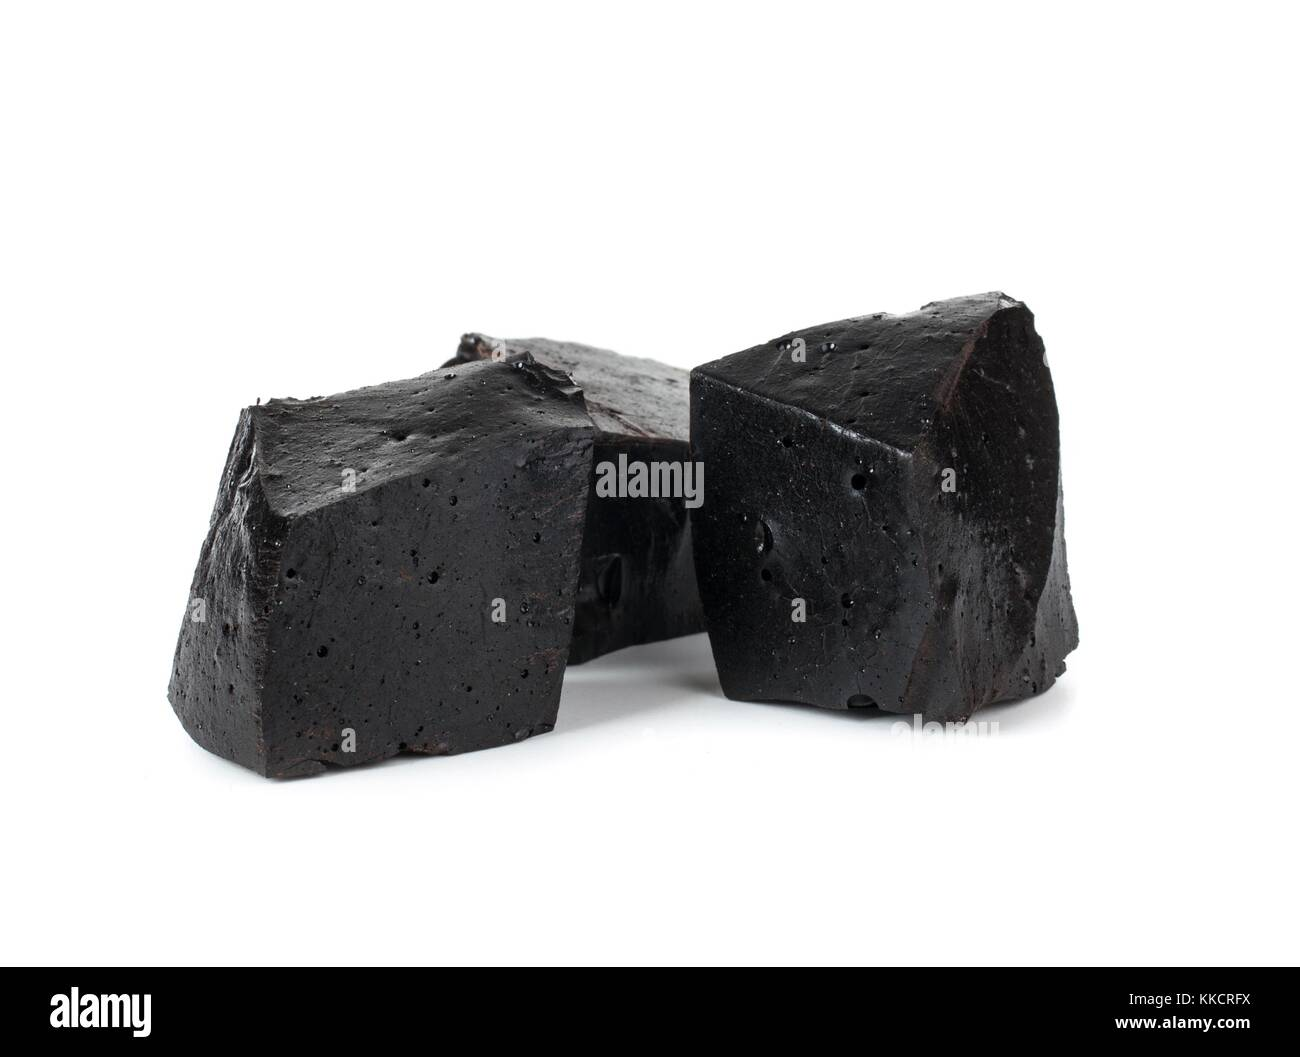 Pure blocks of licorice - Stock Image